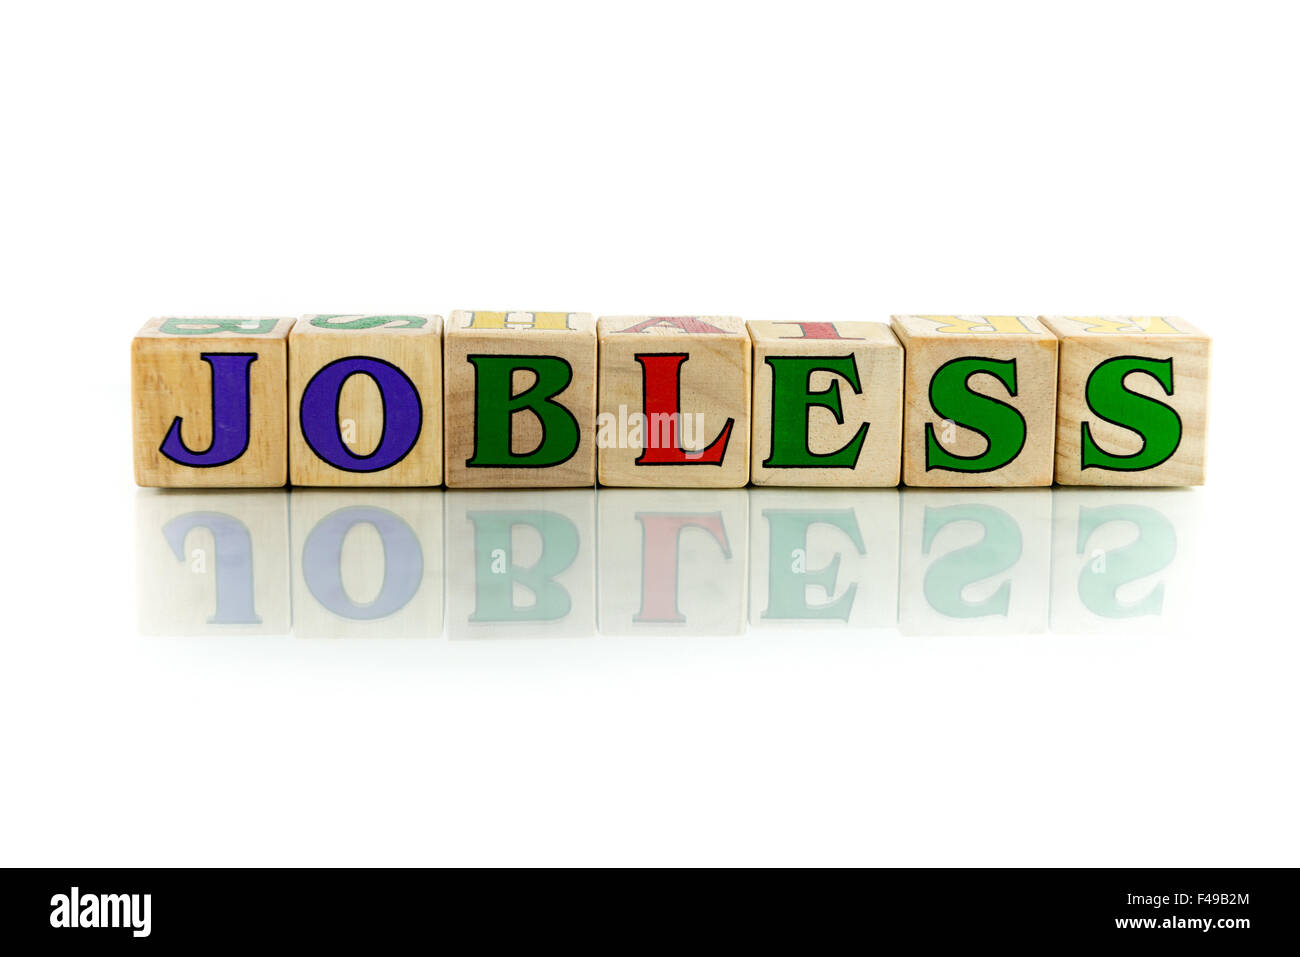 jobless - Stock Image